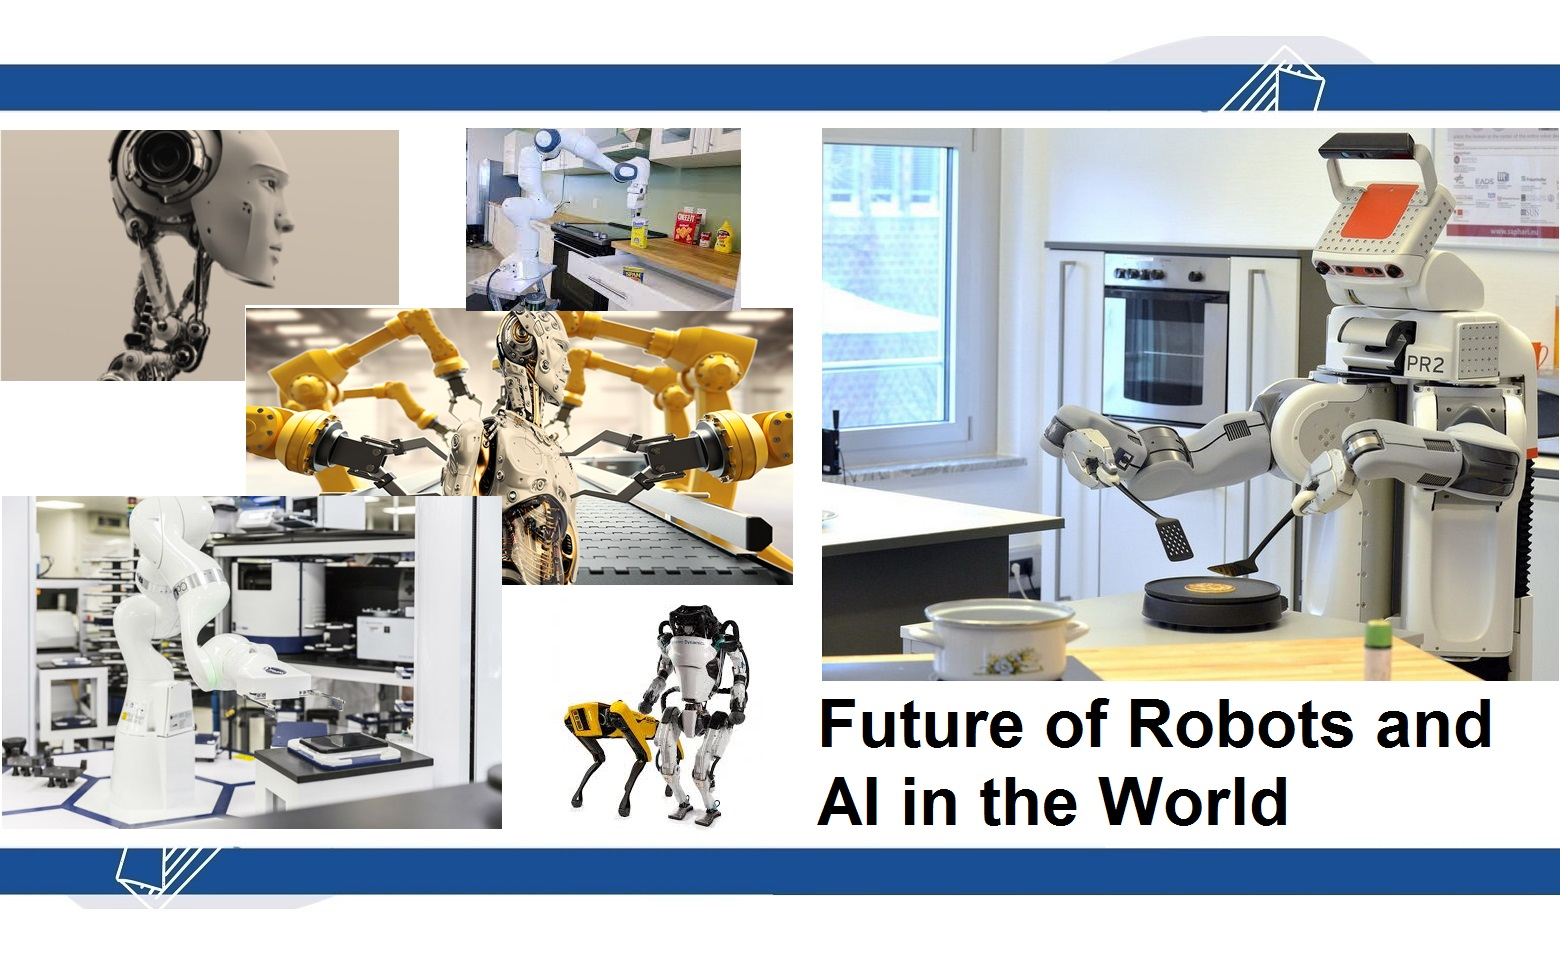 Future of Robots in the world